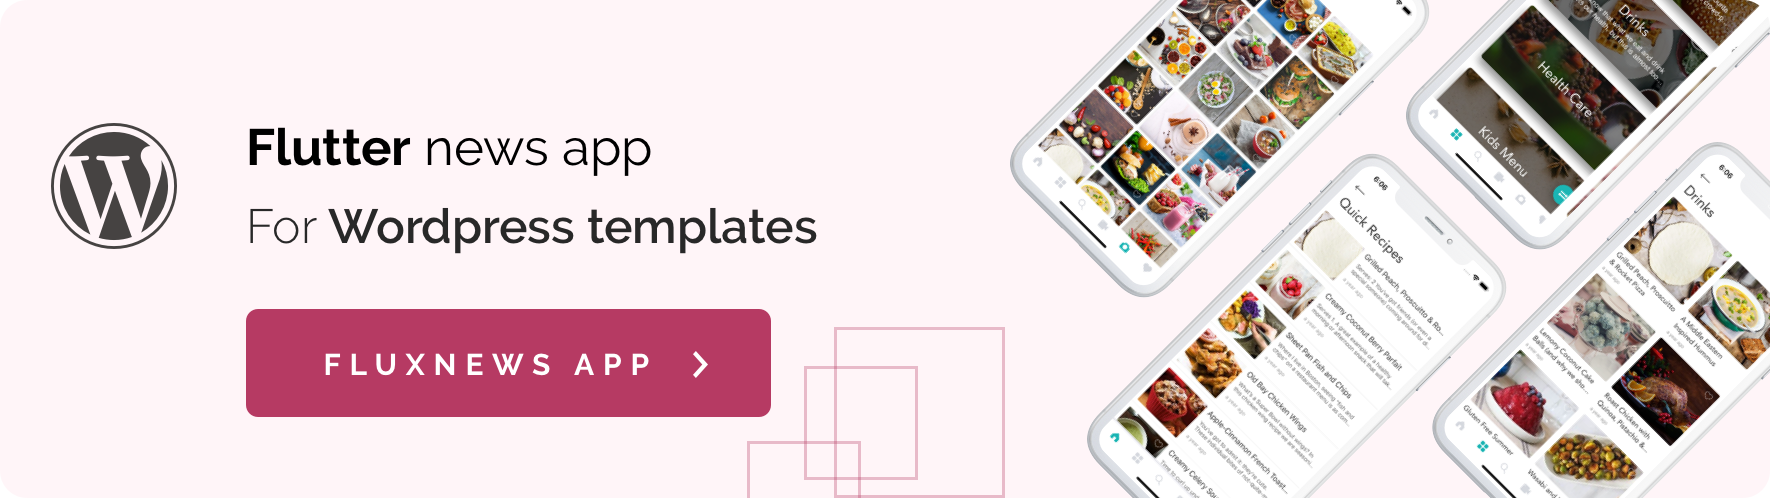 Mstore Shopify - Complete React Native template for e-commerce - 13